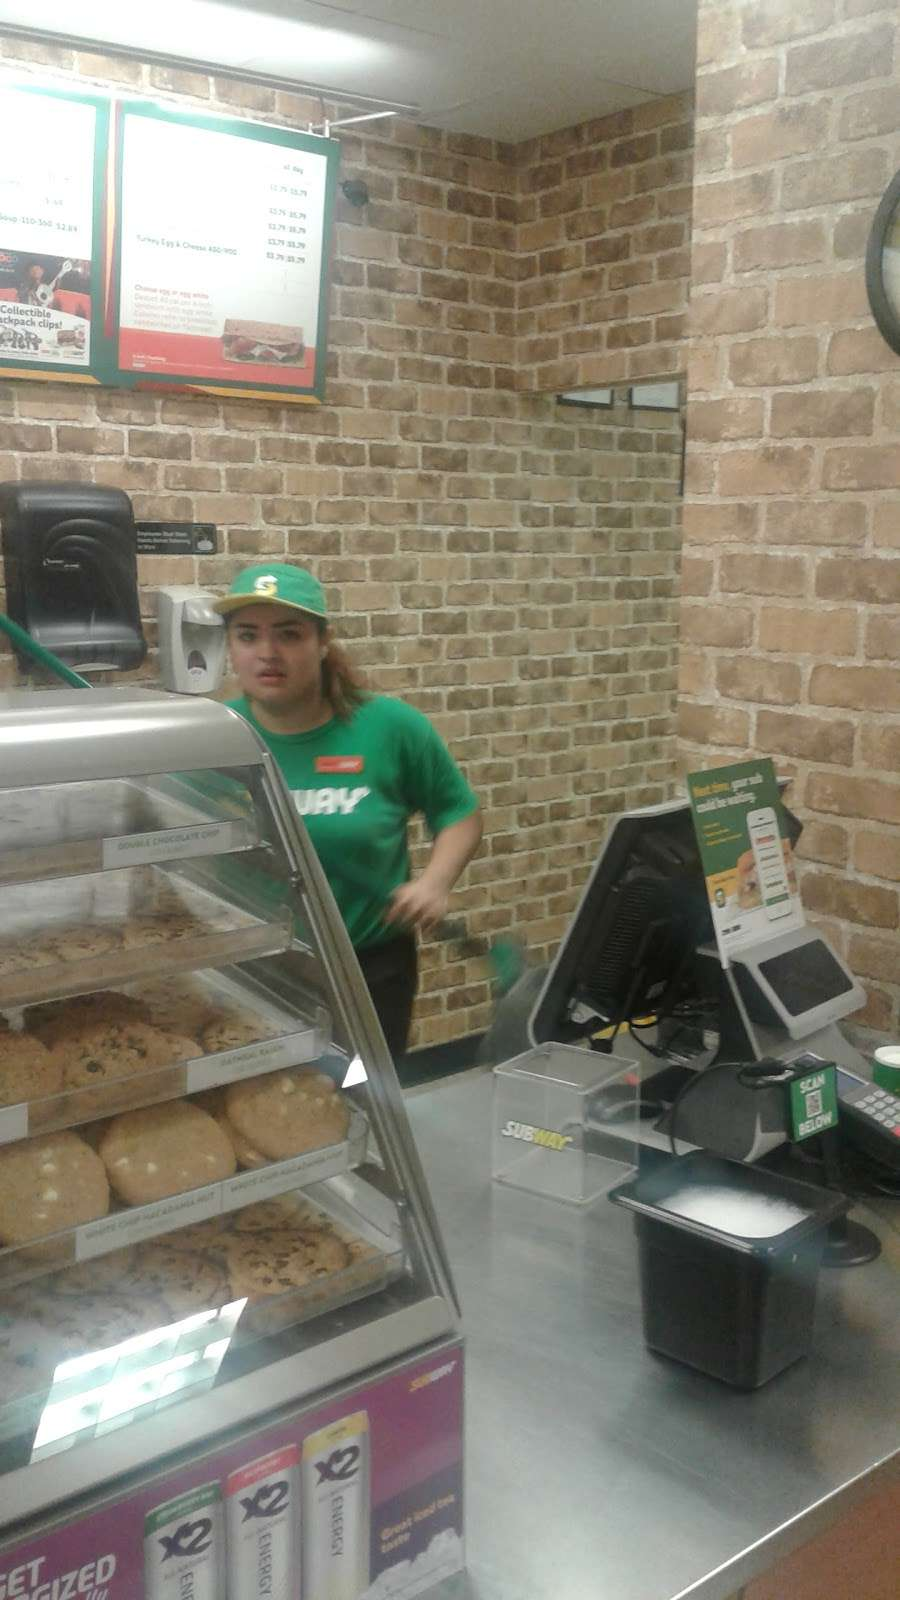 Subway - restaurant  | Photo 4 of 4 | Address: 3806 N Shepherd Rd, Houston, TX 77018, USA | Phone: (713) 695-3575